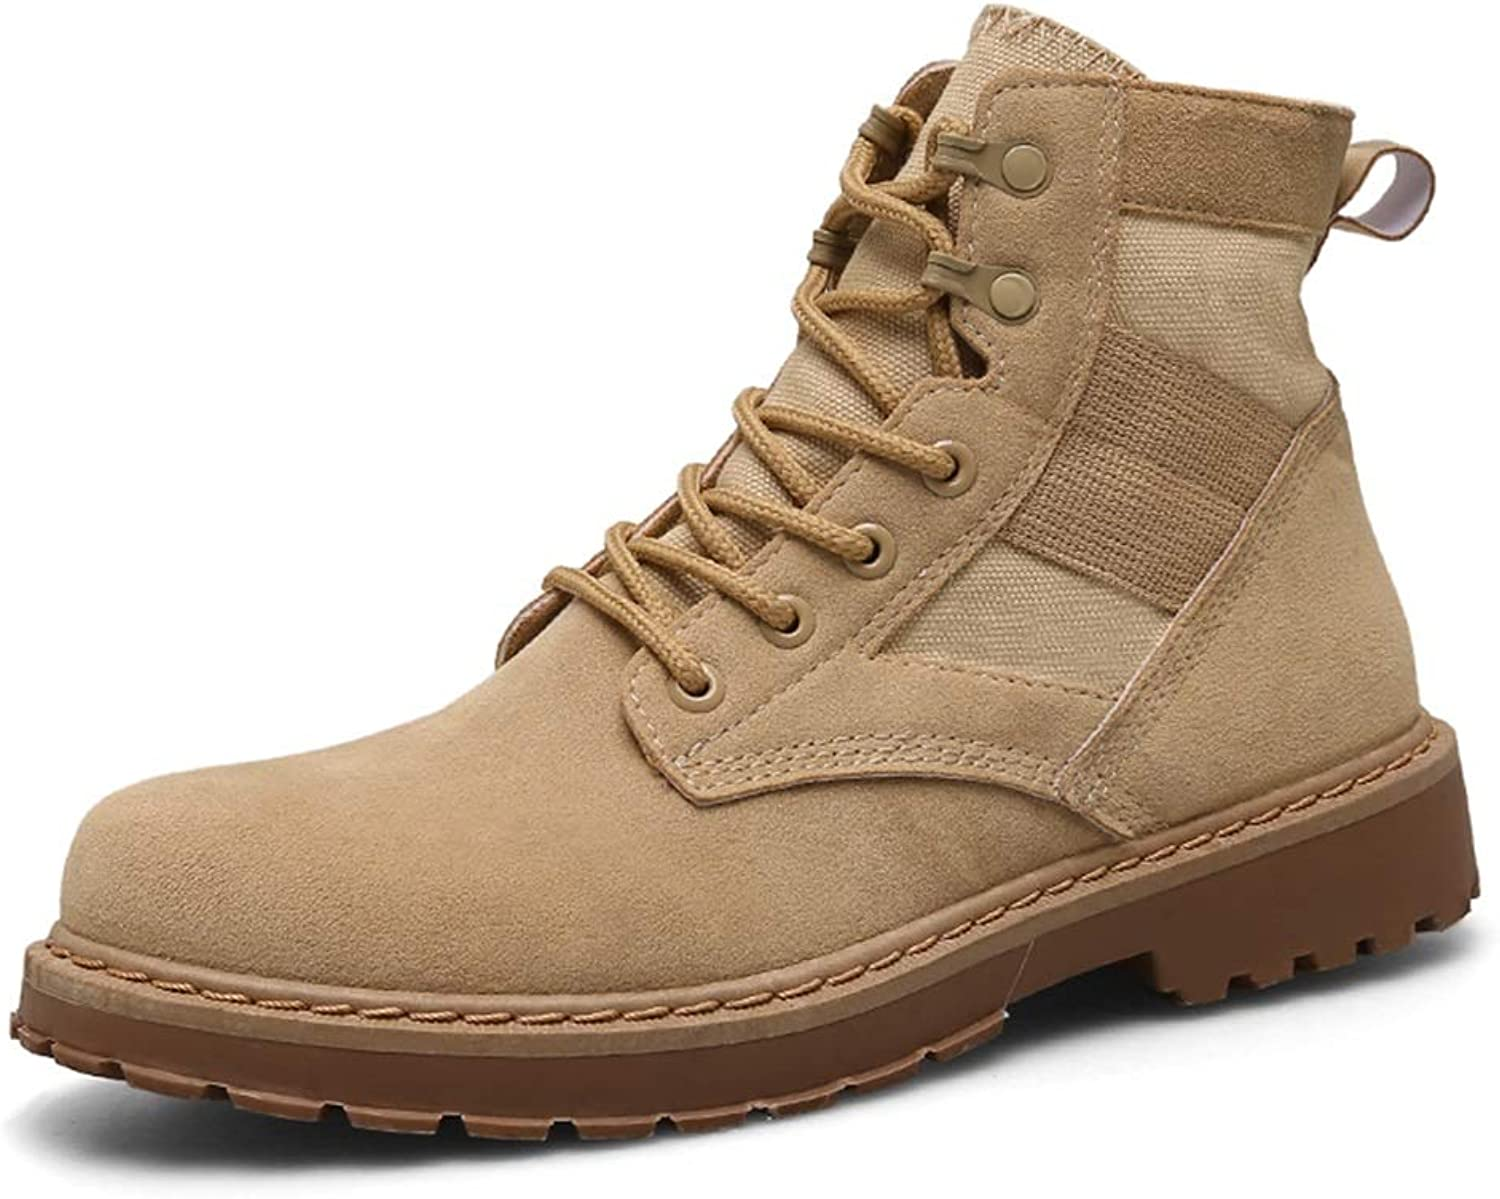 ChengxiO Men's Boots Martin Boots Tooling shoes Men's New England Martin Boots Men's Boots High shoes Desert Boots Men's Boots